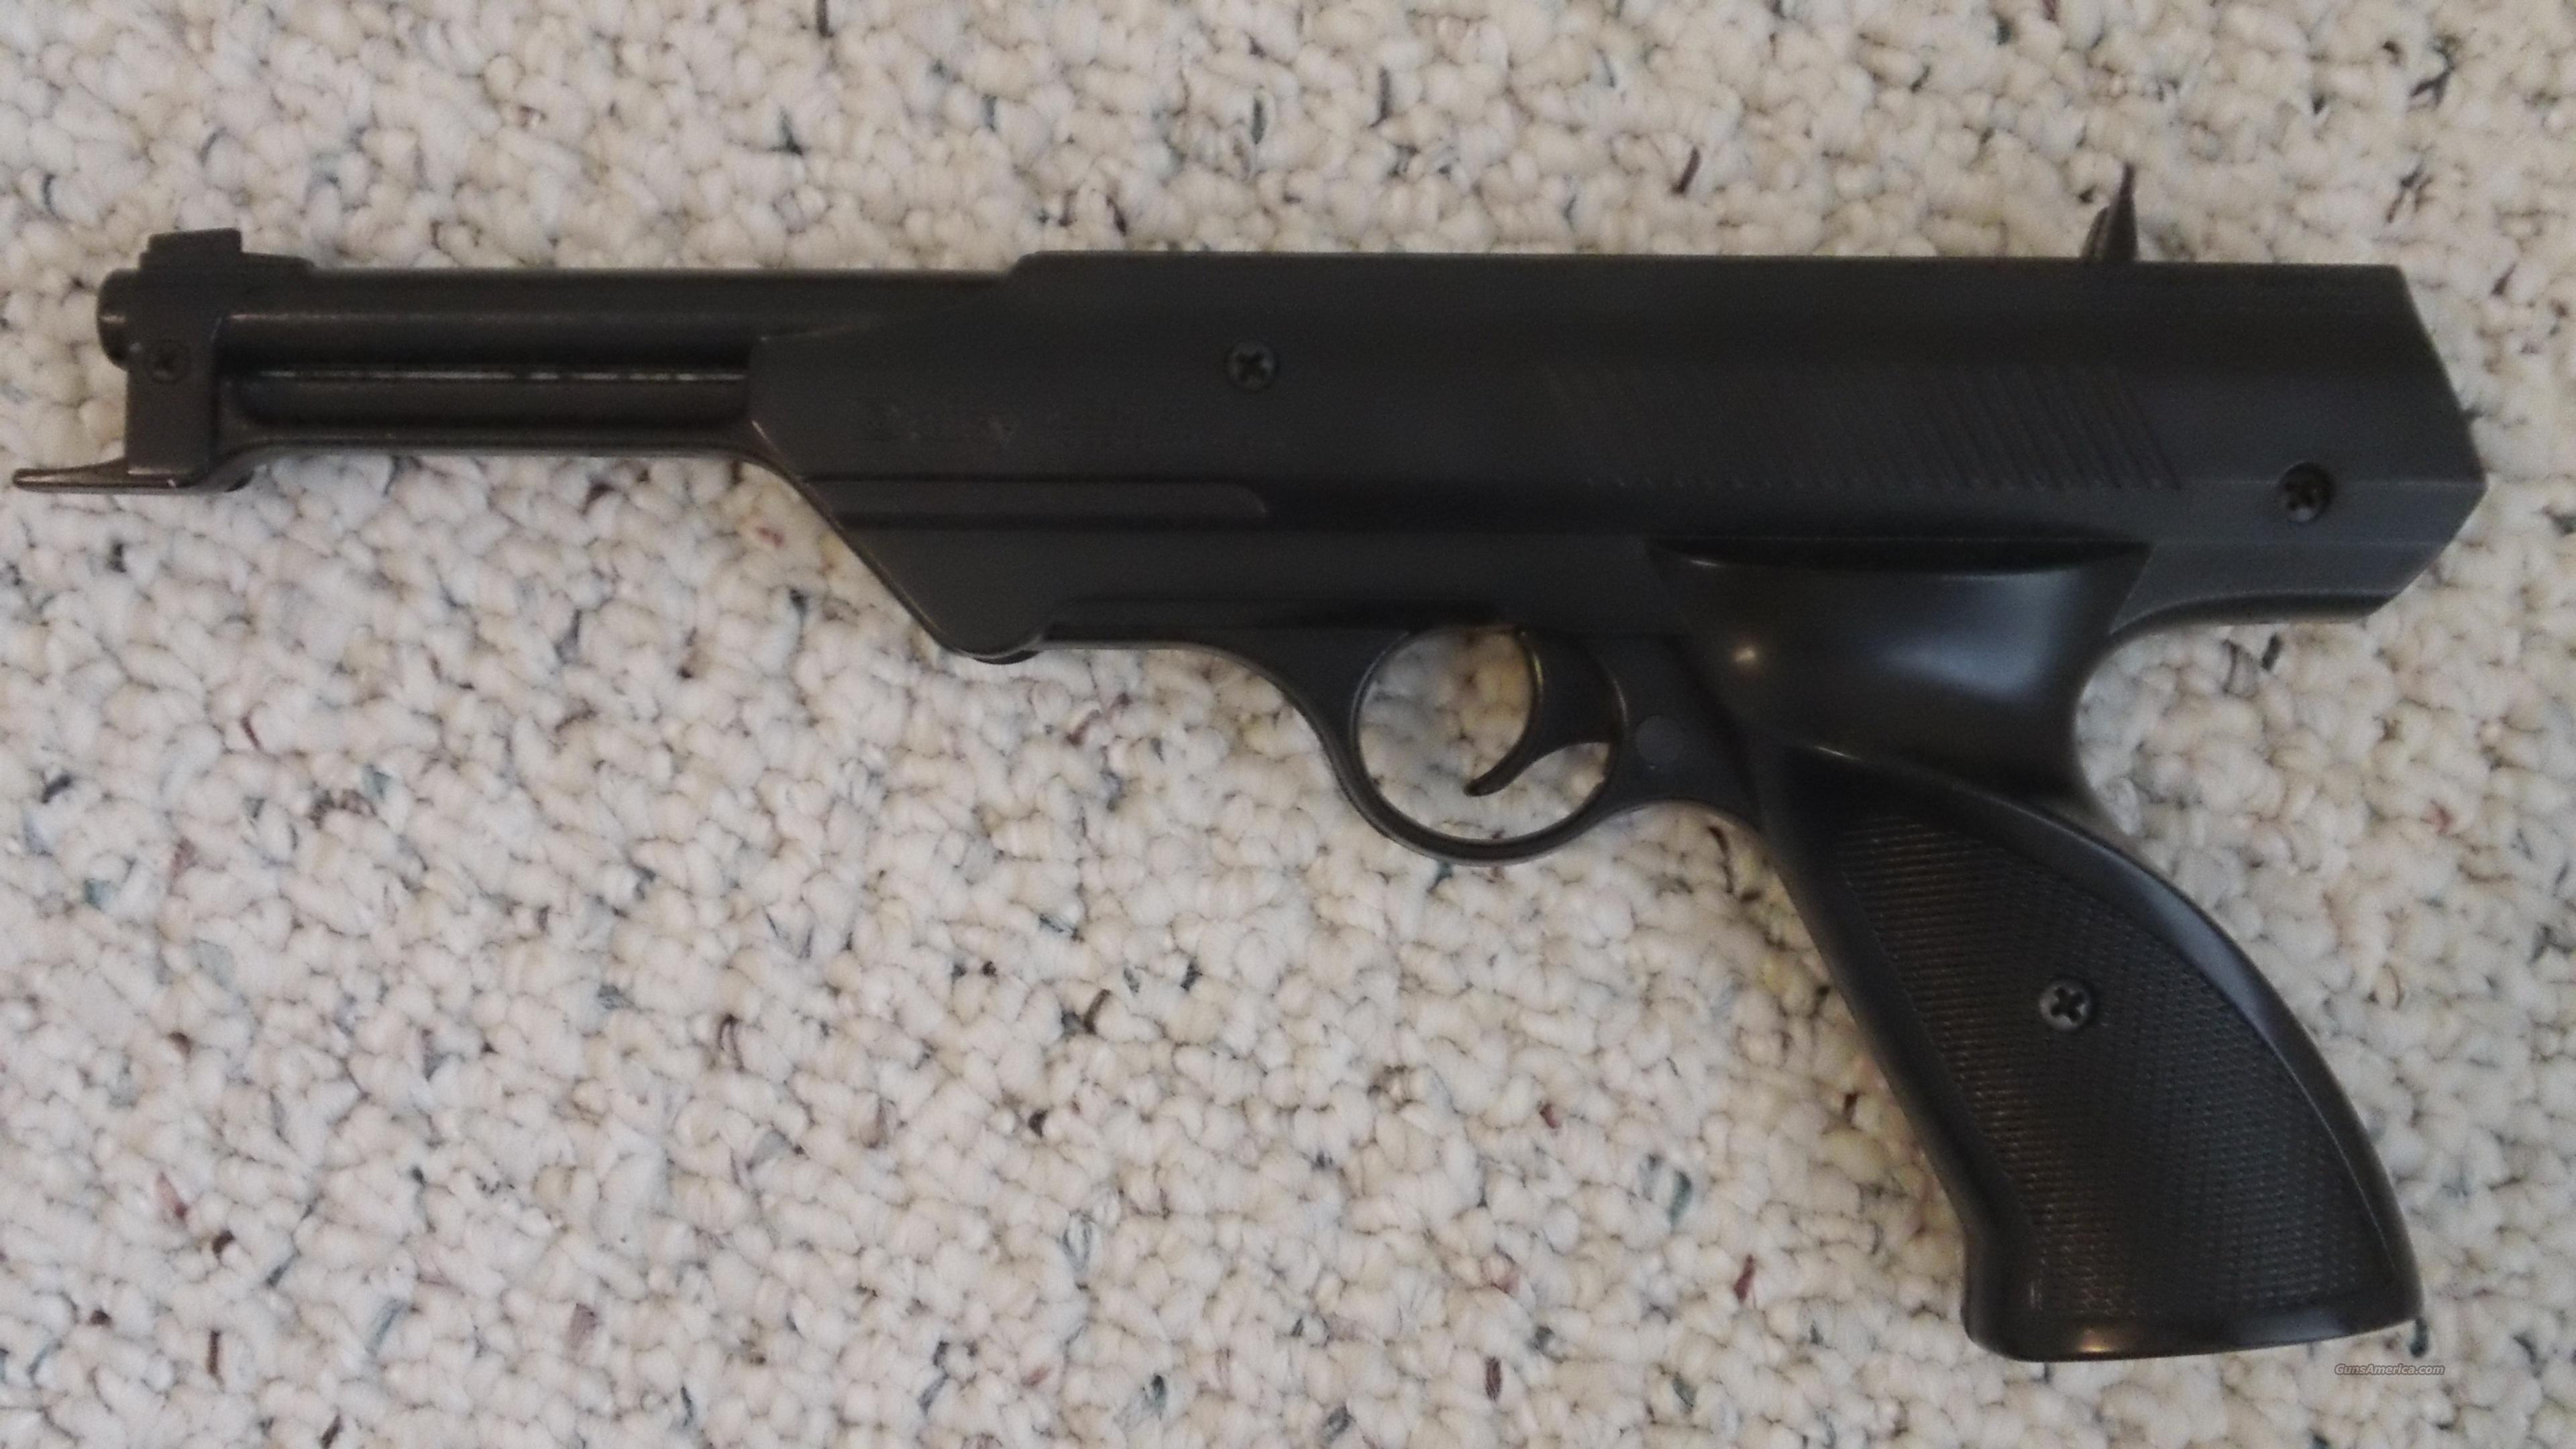 Air Rifles Pistols Vintage For Sale on GunsAmerica Buy